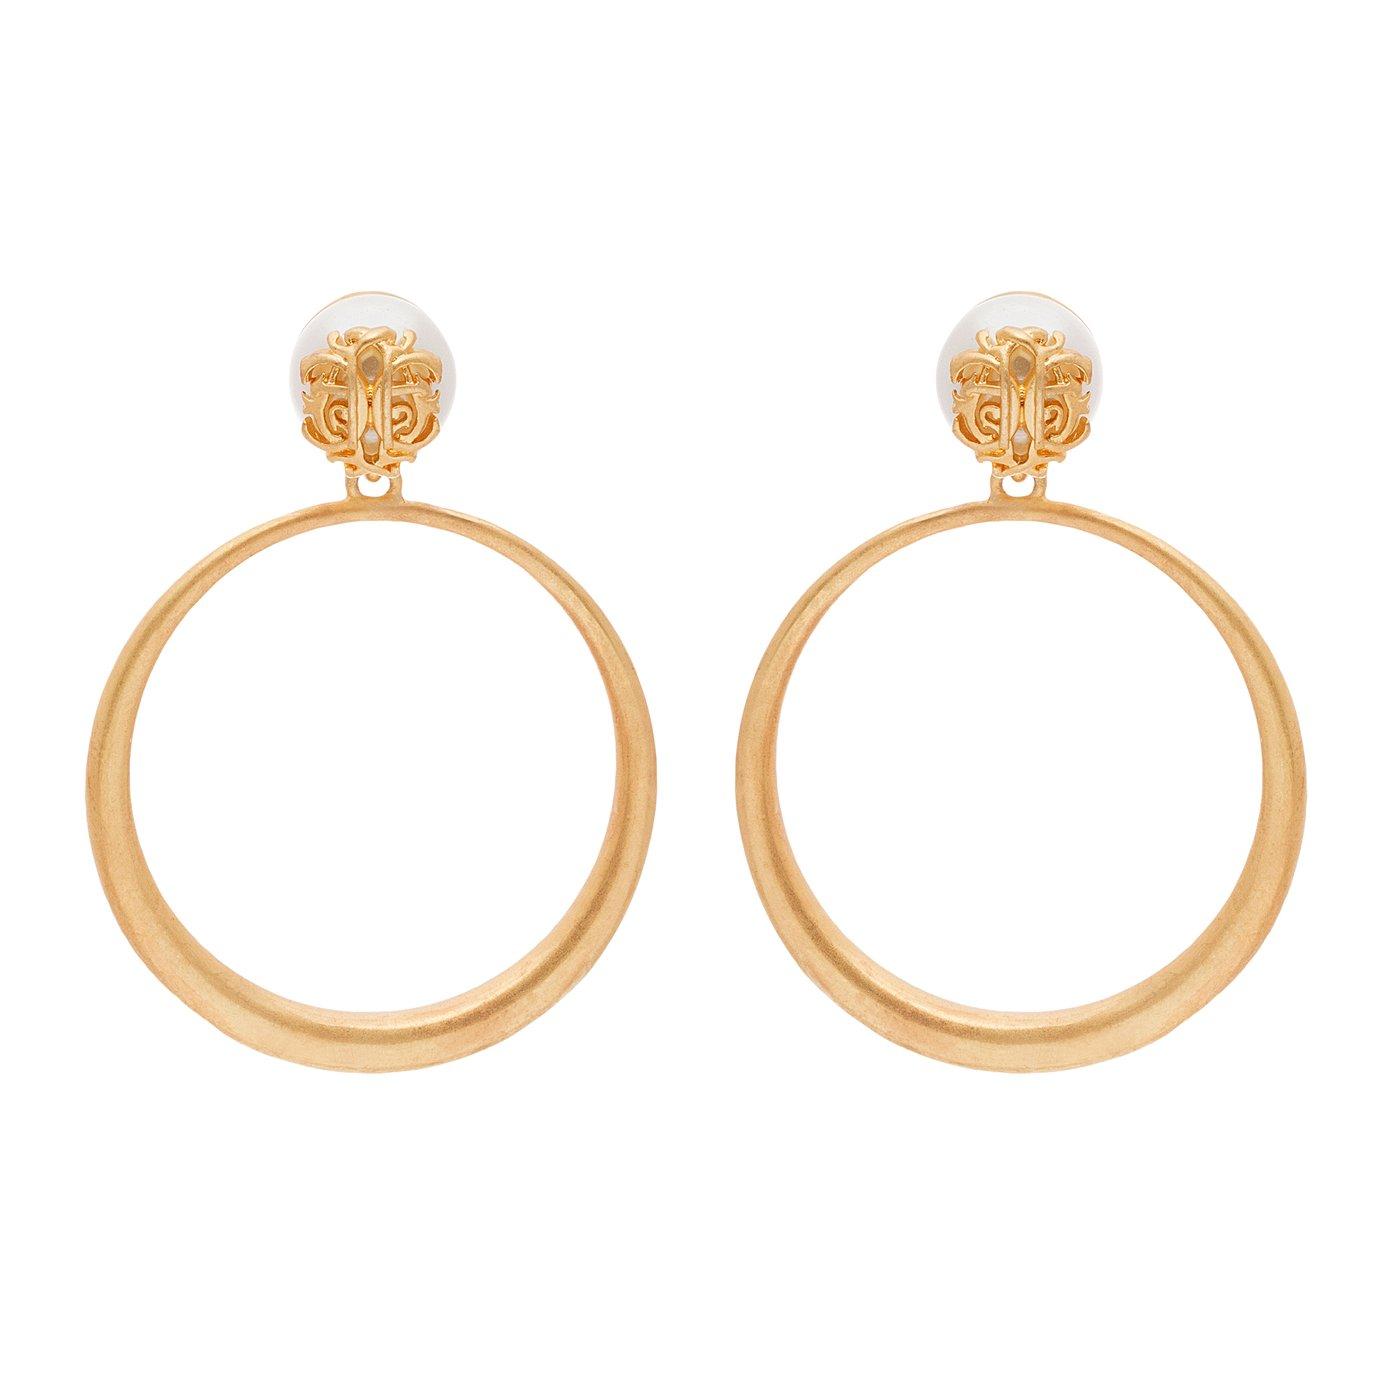 Anna Cate Melanie Hoop Earrings